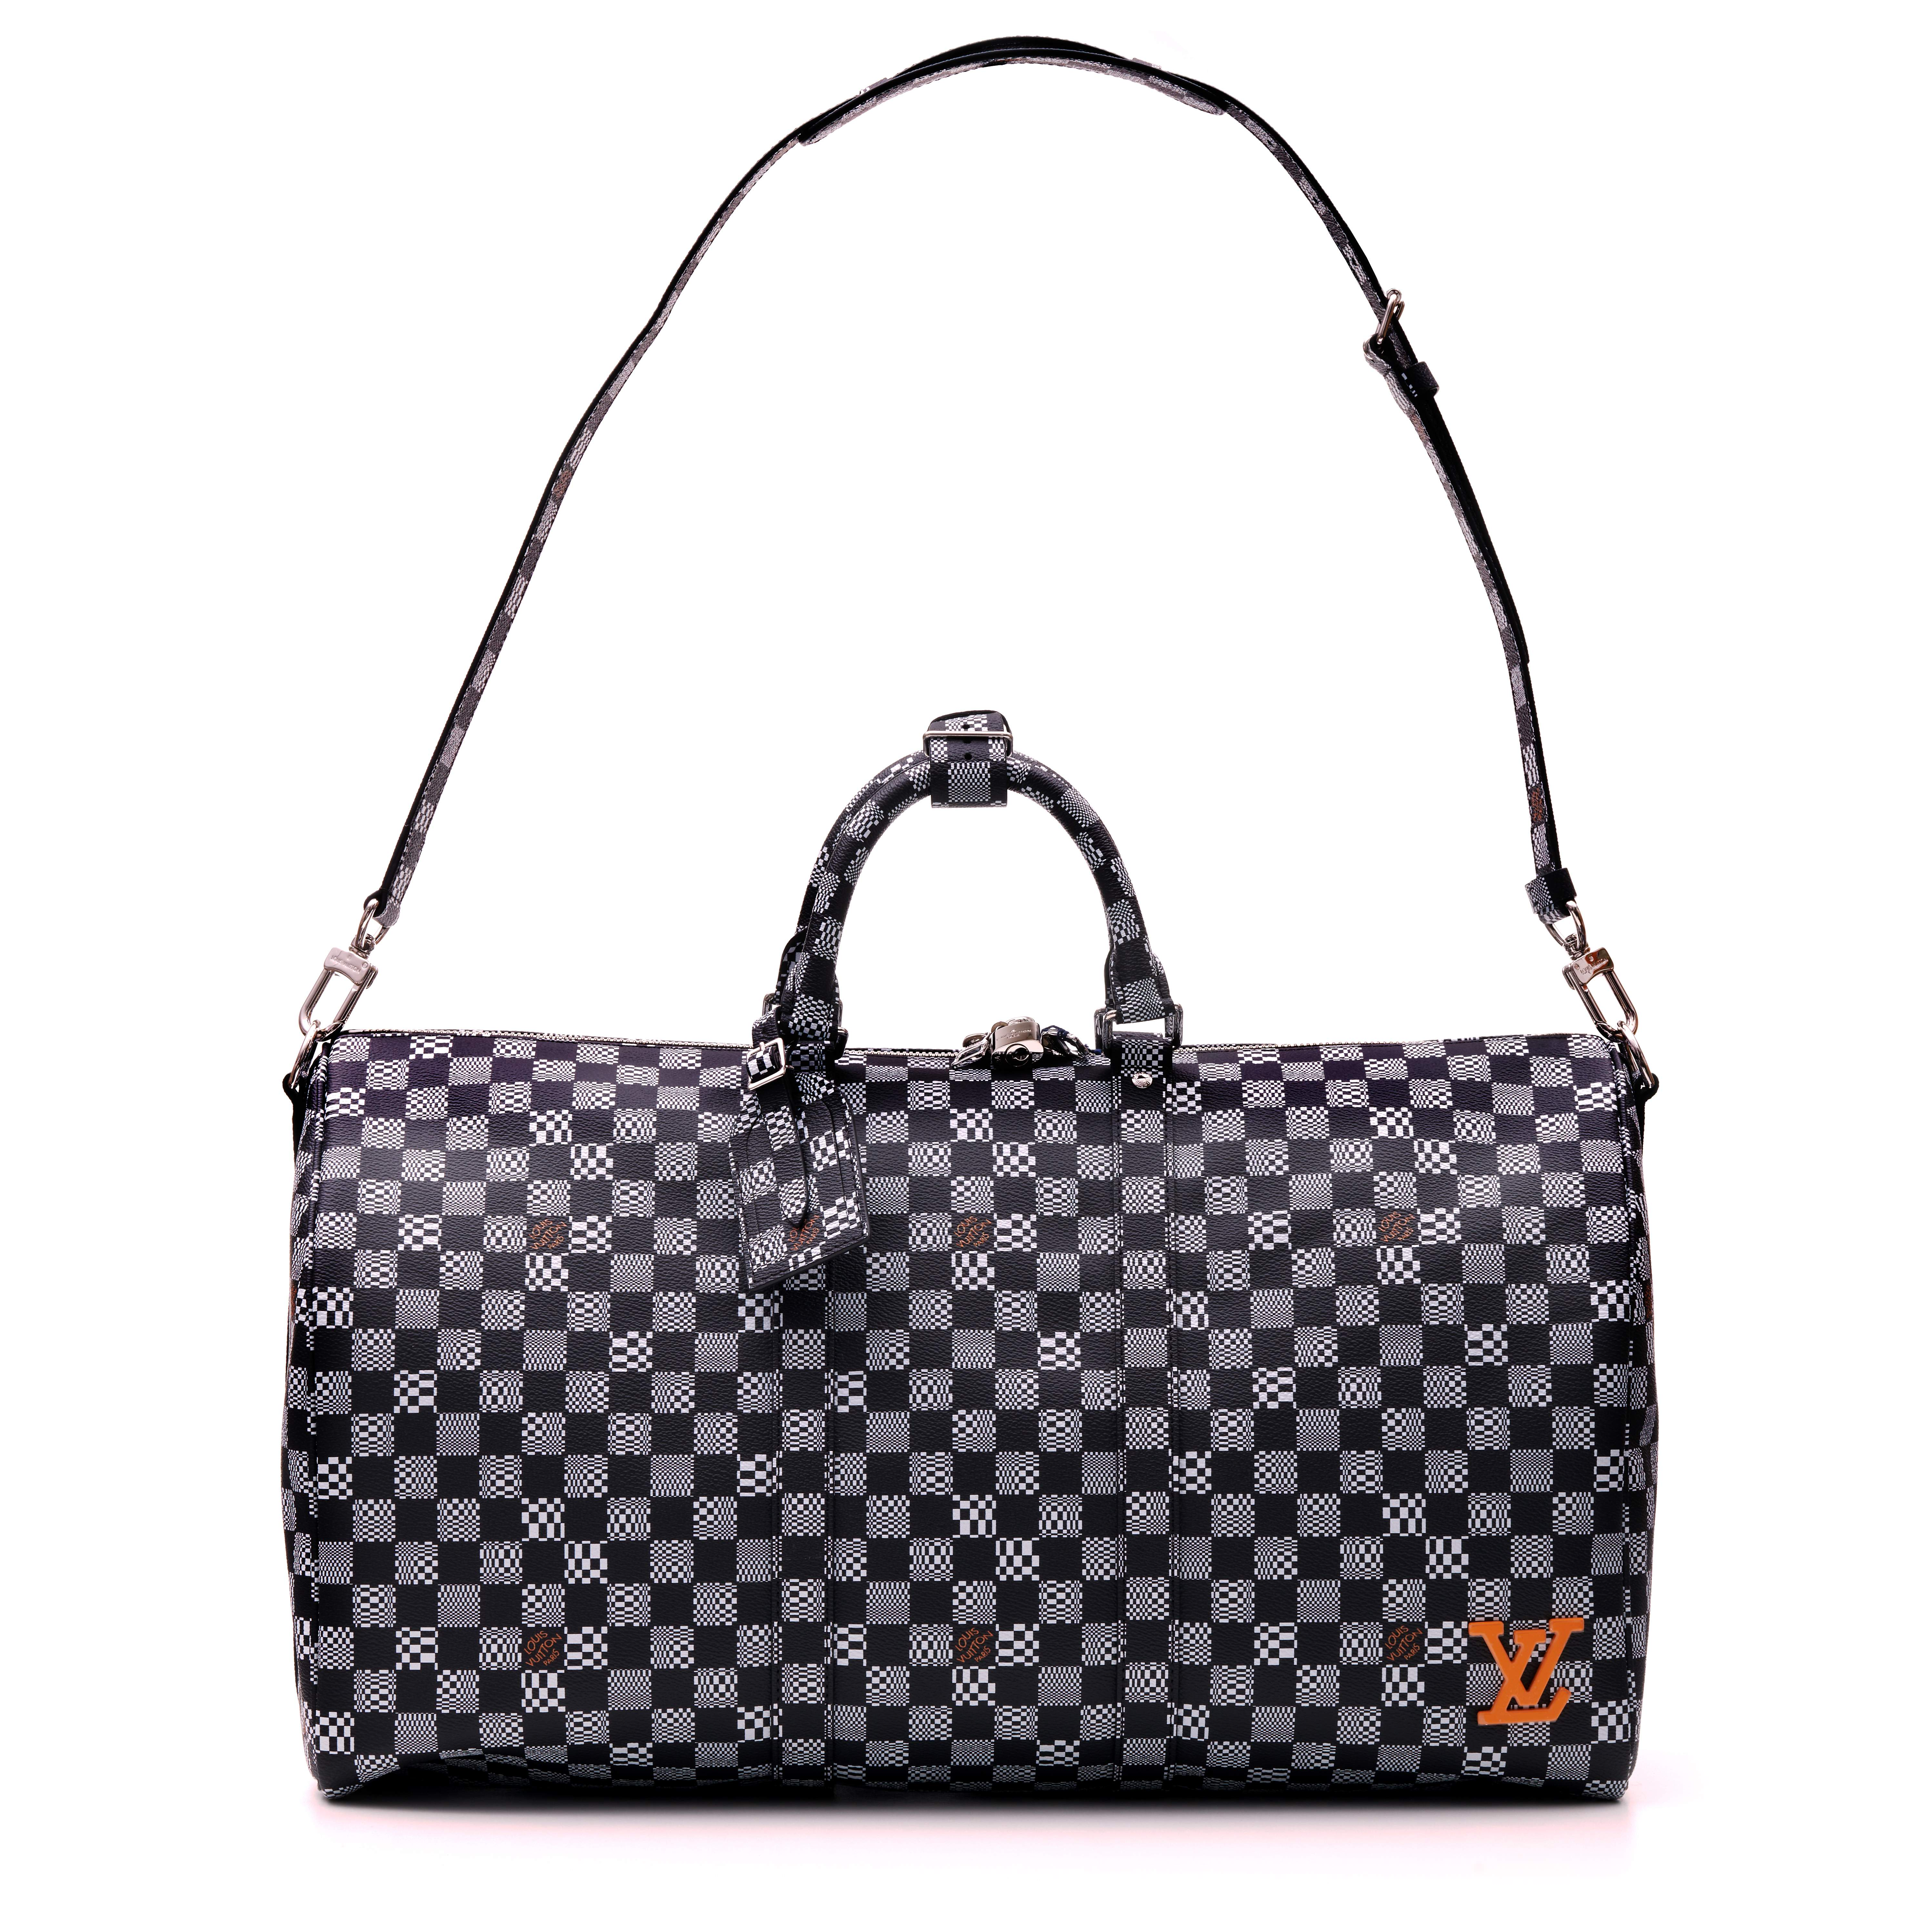 View full screen - View 1 of Lot 337. Black Distorted Damier Keepall Bandouliere 50cm in Coated Canvas and Cowhide Leather with Palladium Tone Hardware, 2020.